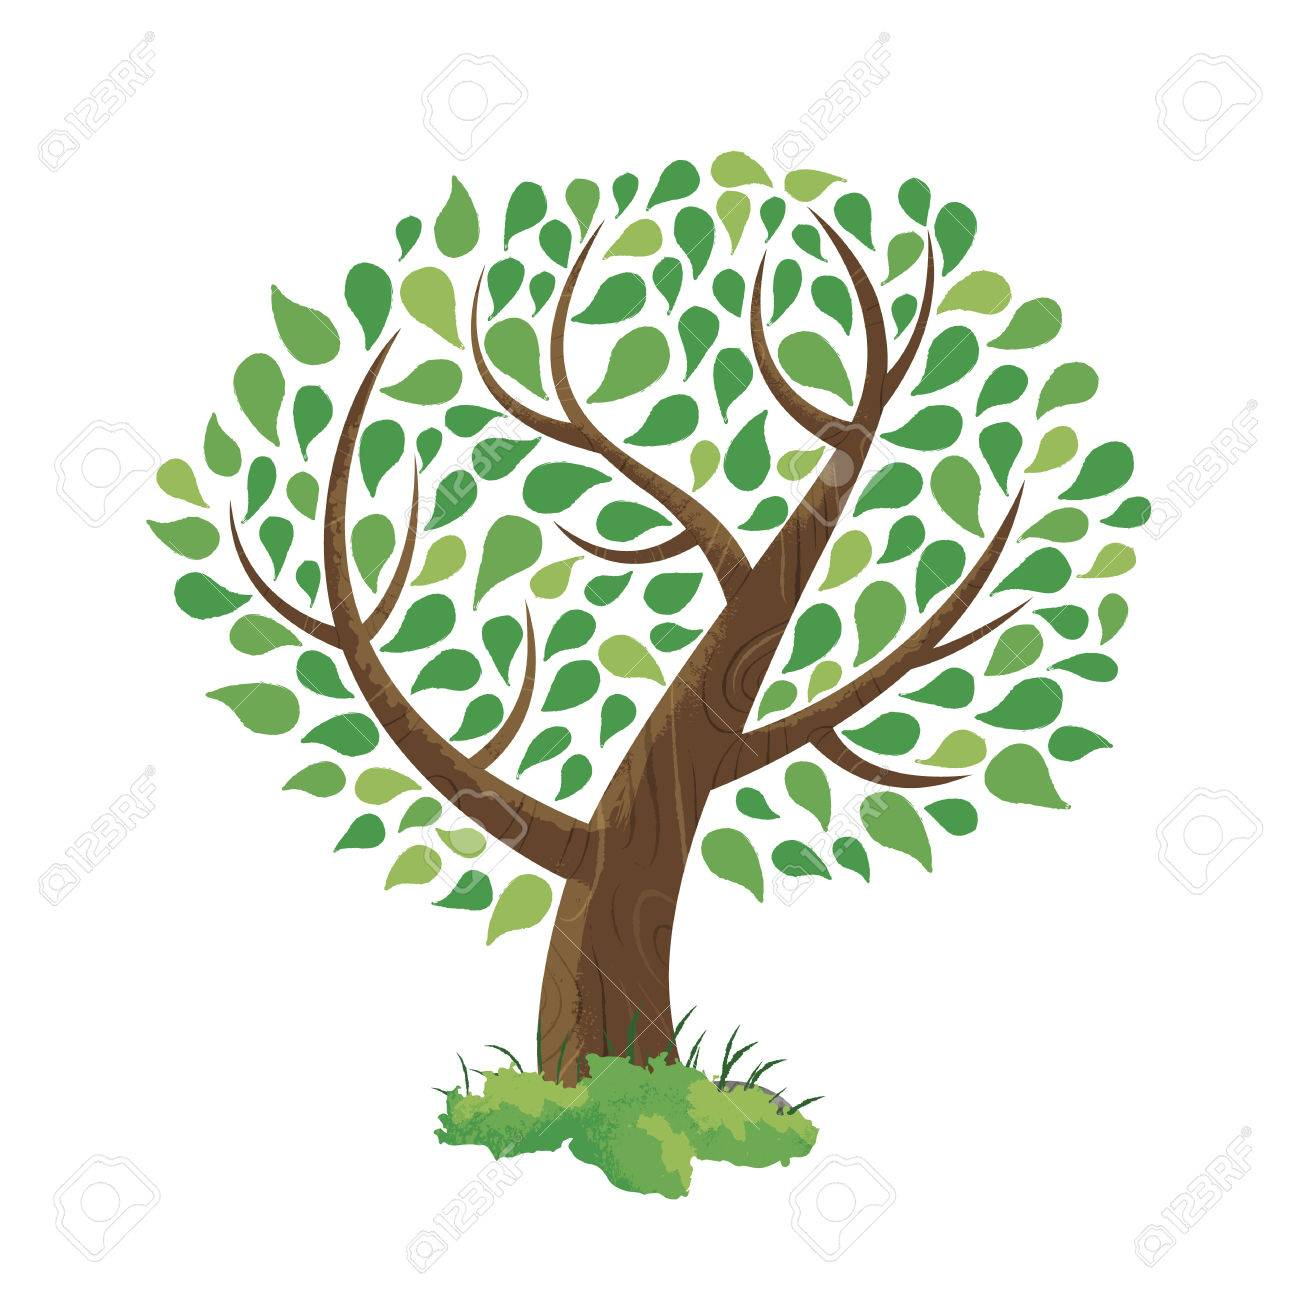 Hand Drawn Tree Made Of Colorful Green Leaf Foliage Art. Environment ...